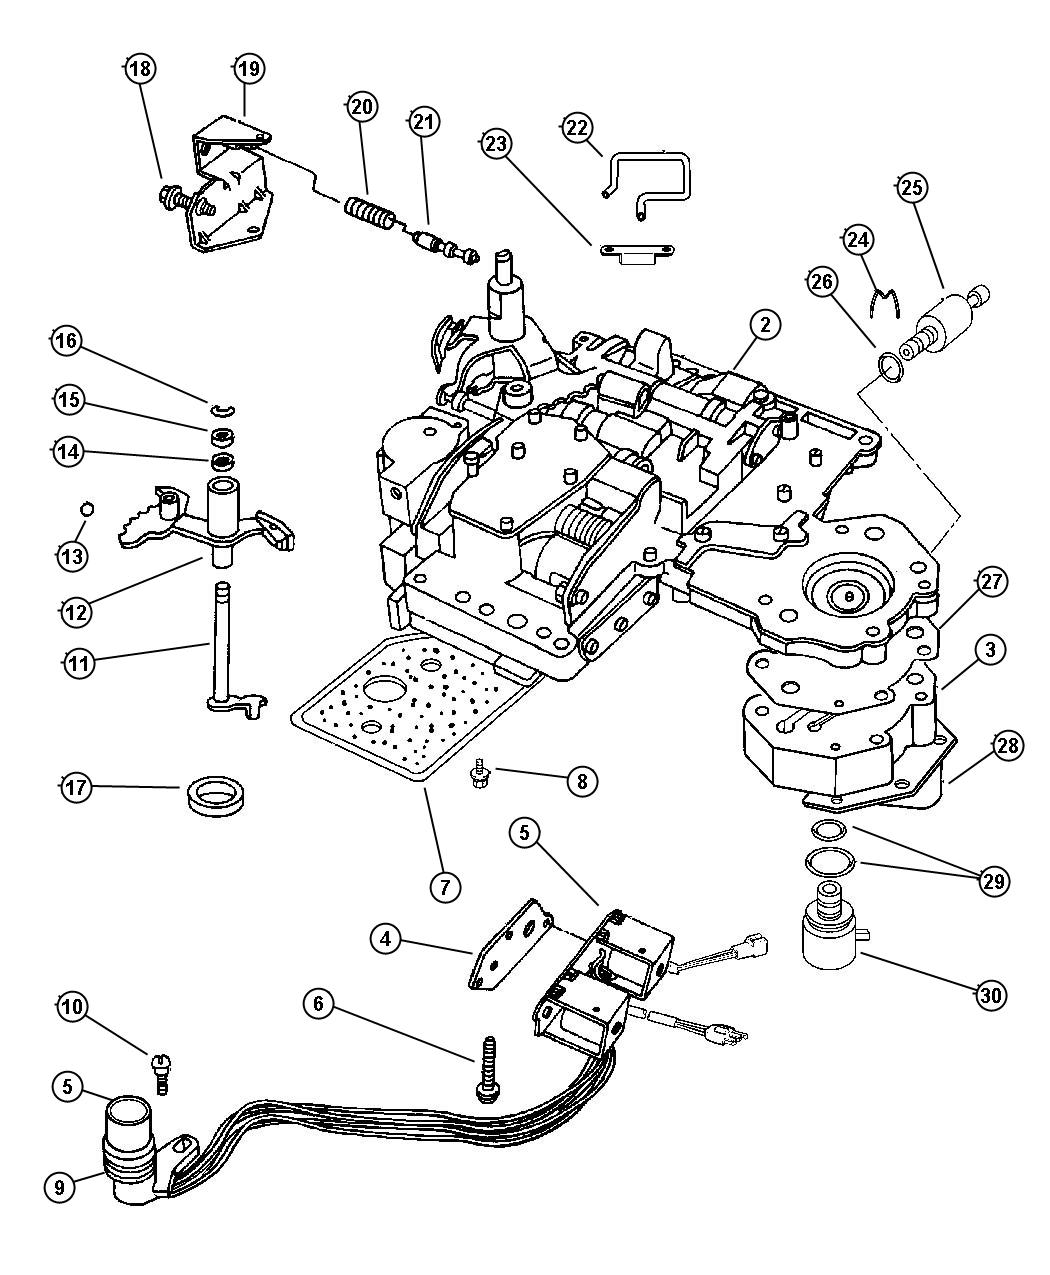 2002 dodge intrepid engine diagram 2001 dodge ram factory radio wiring diagram 2001 discover your dodge ram 1500 transmission wiring diagrams